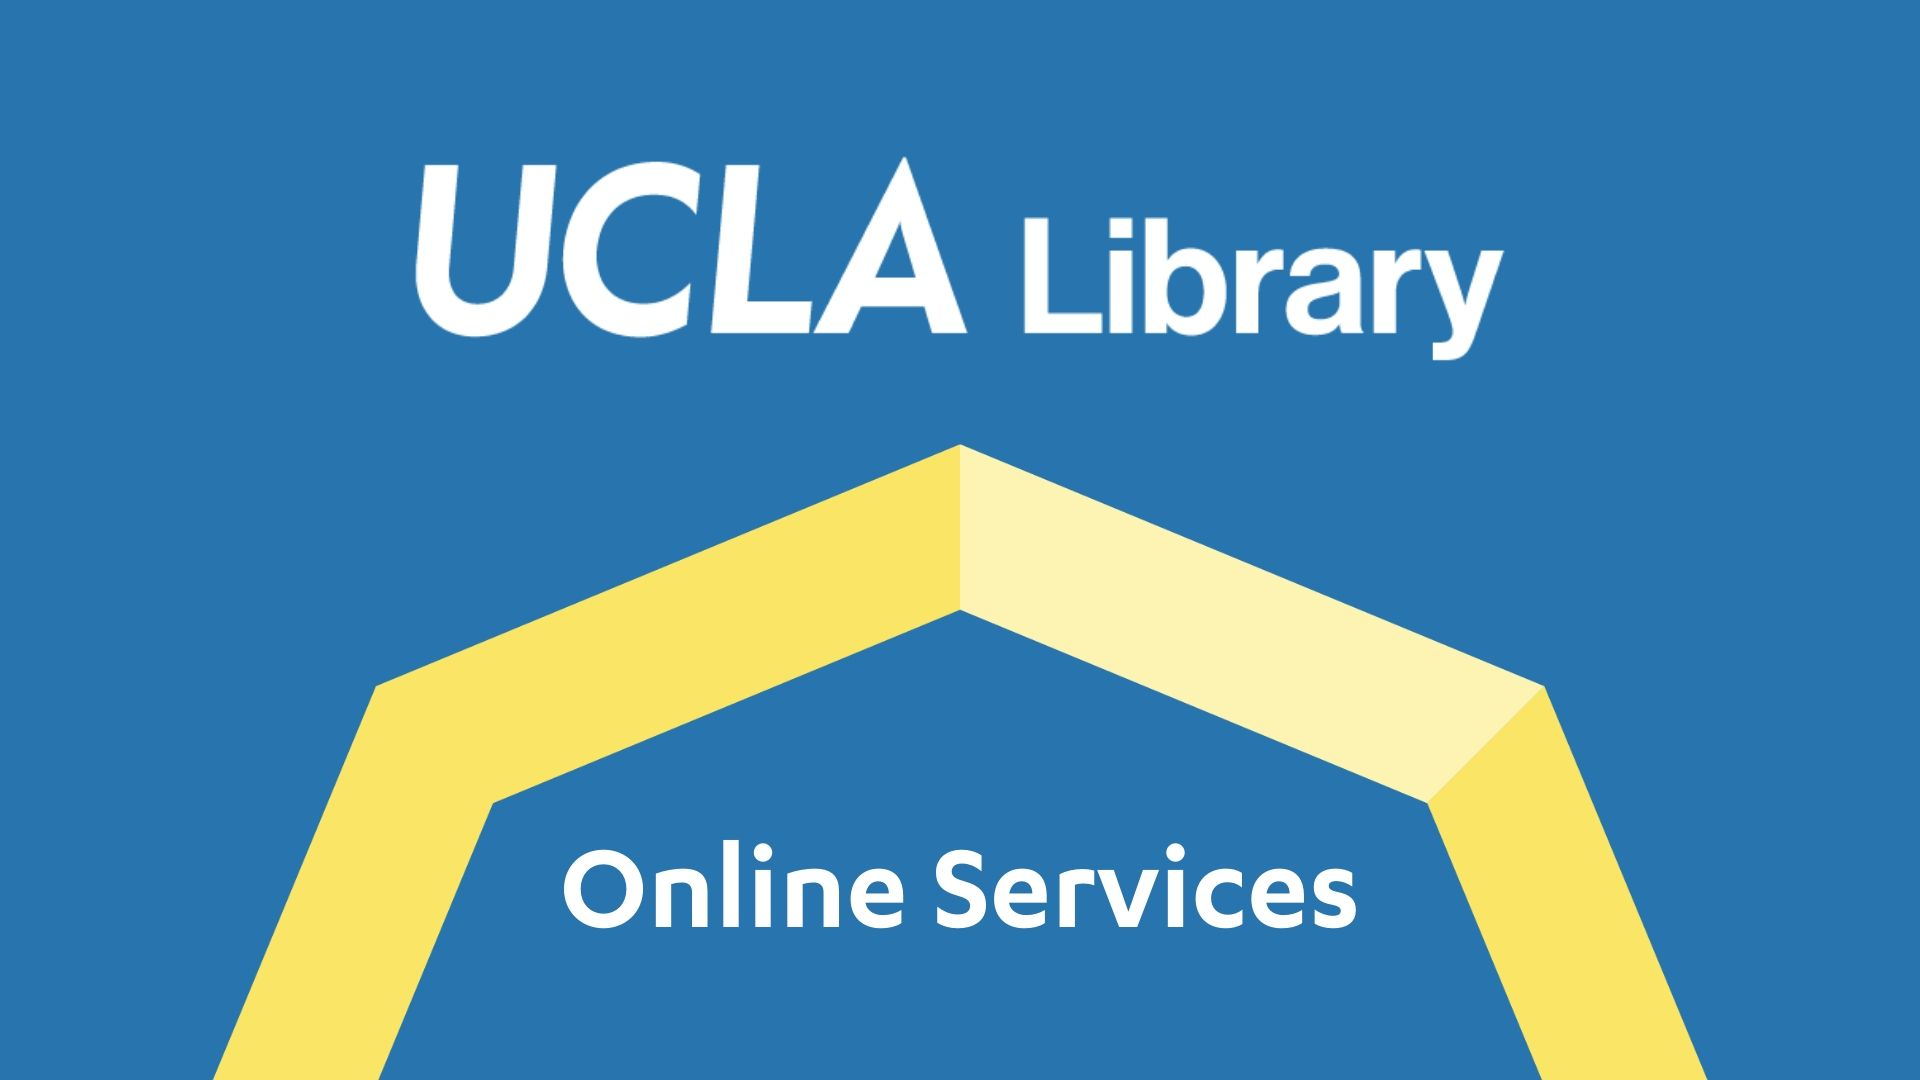 UCLA Library Online Services logo